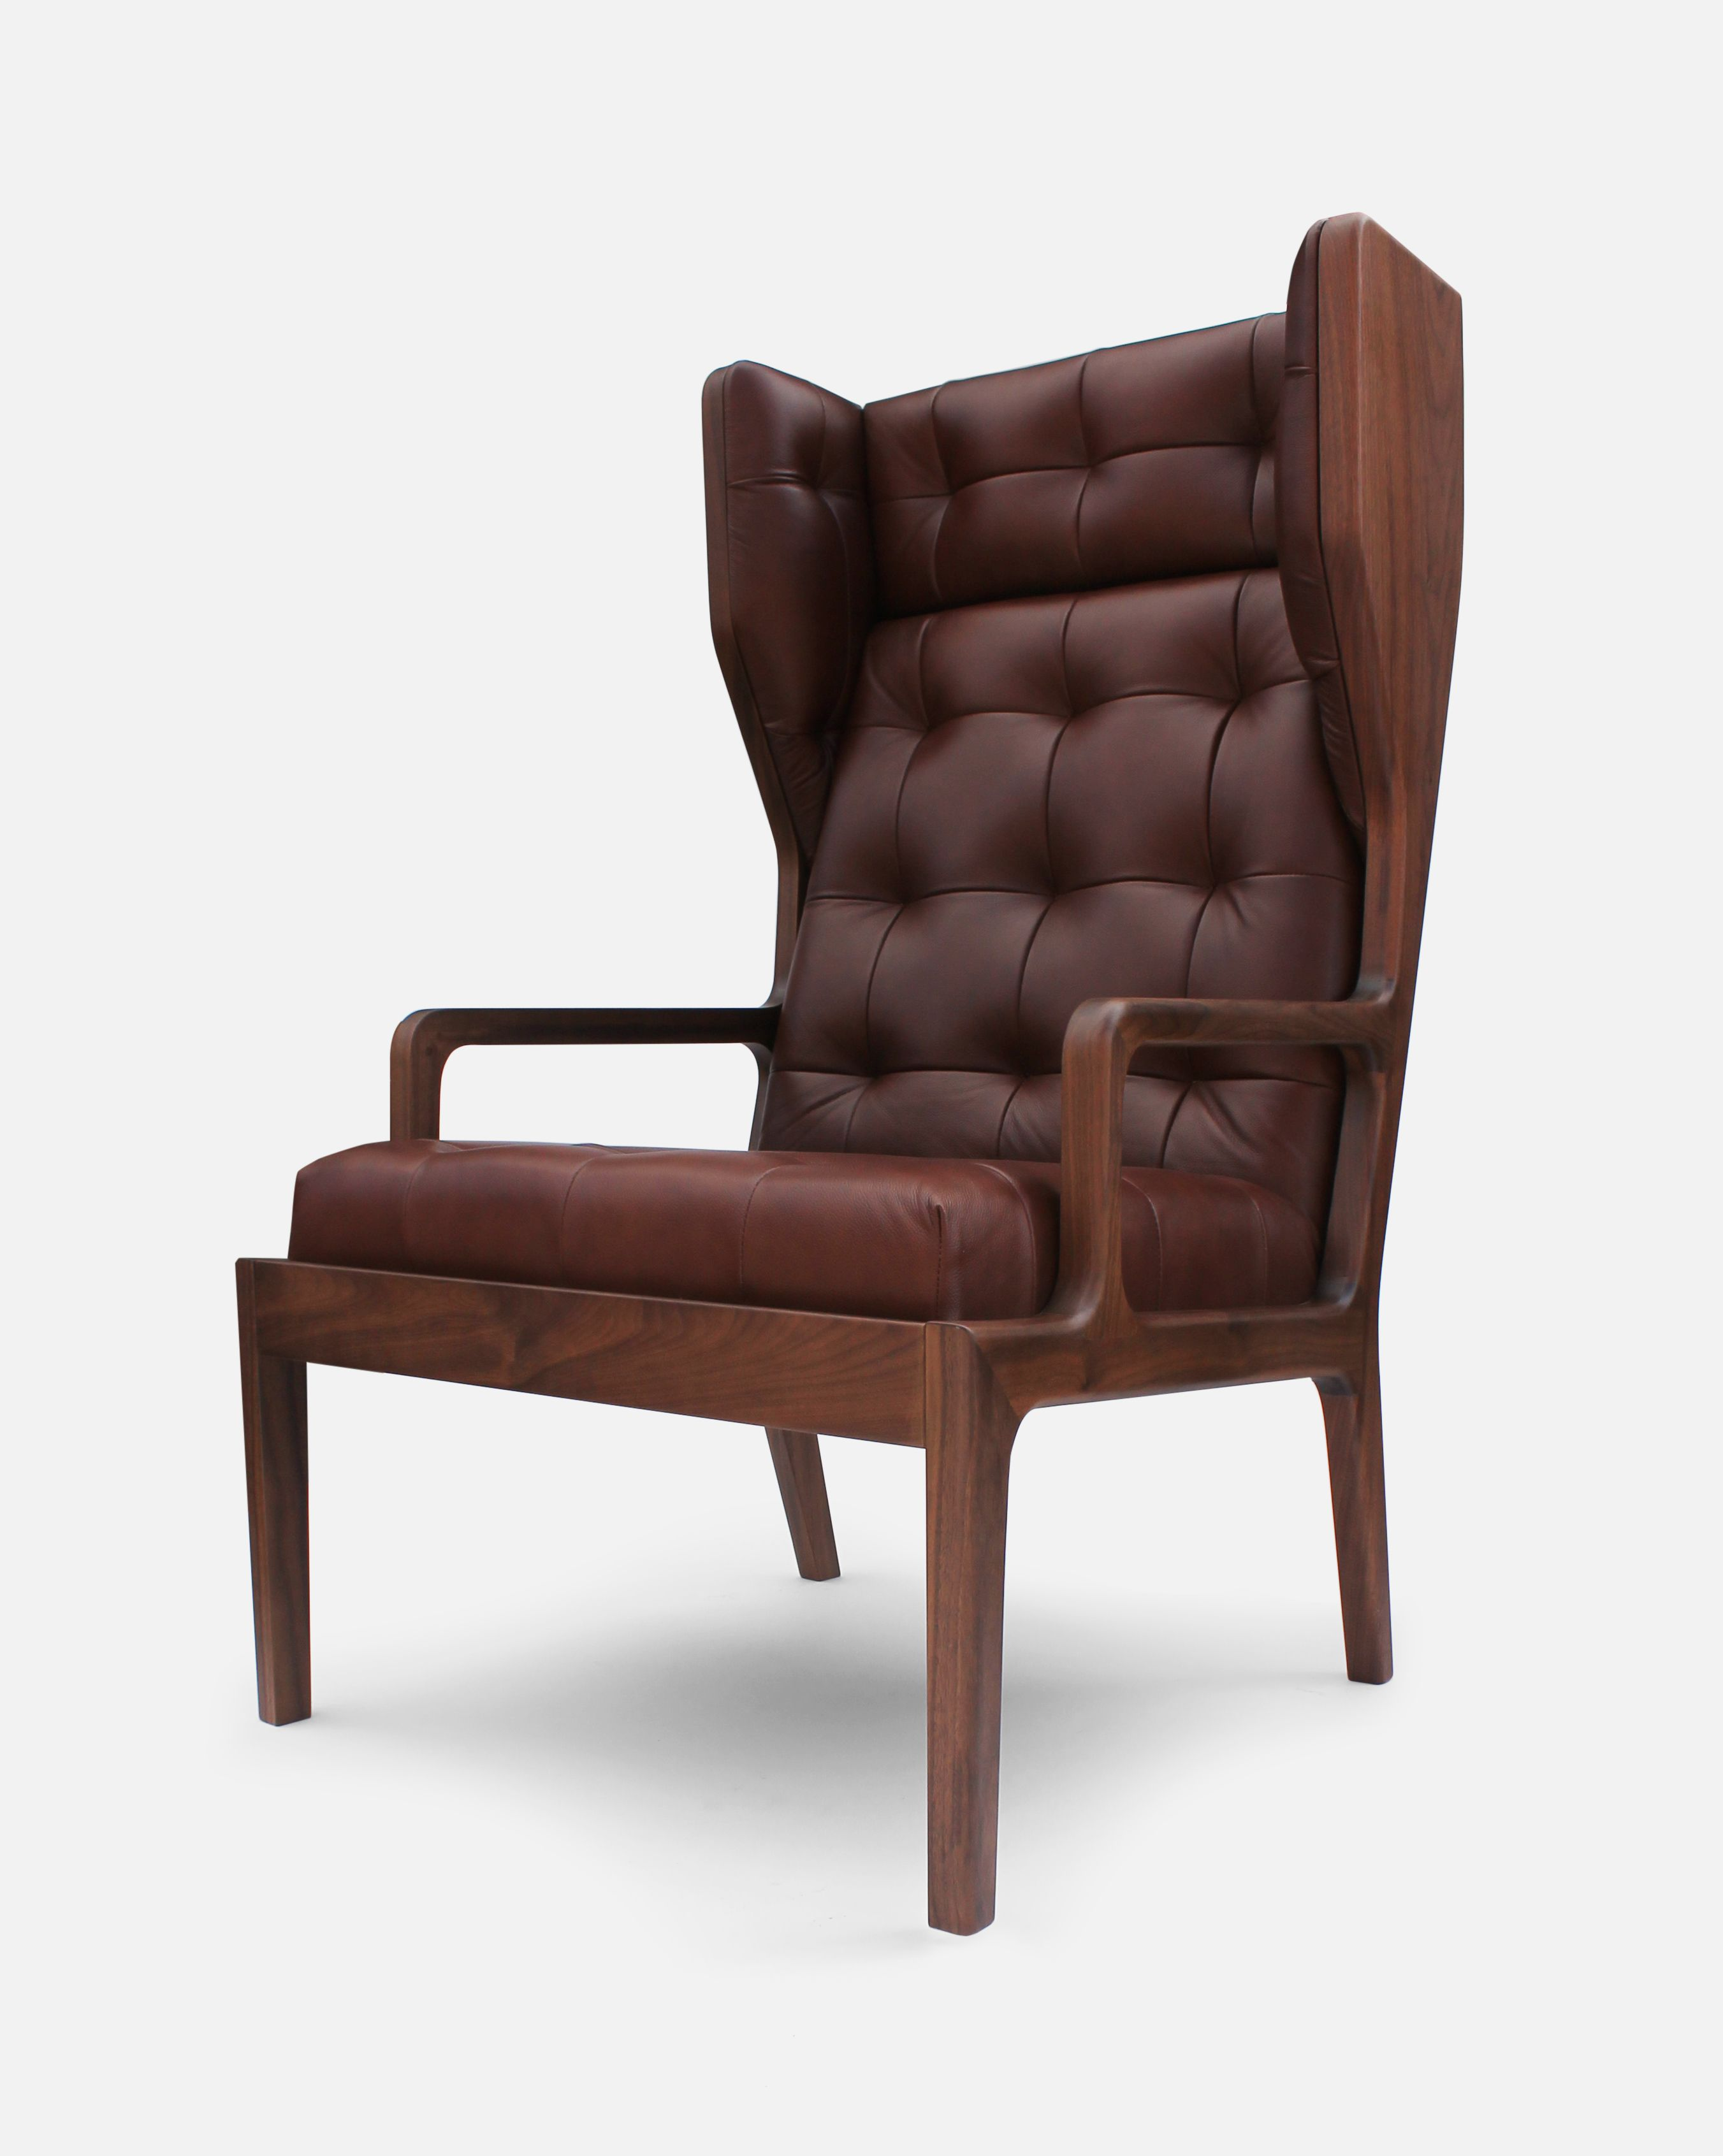 Custom modern chippendale wing chair by ethan allen at 1stdibs - This Danish Modern Wing Chair Is No Longer Available